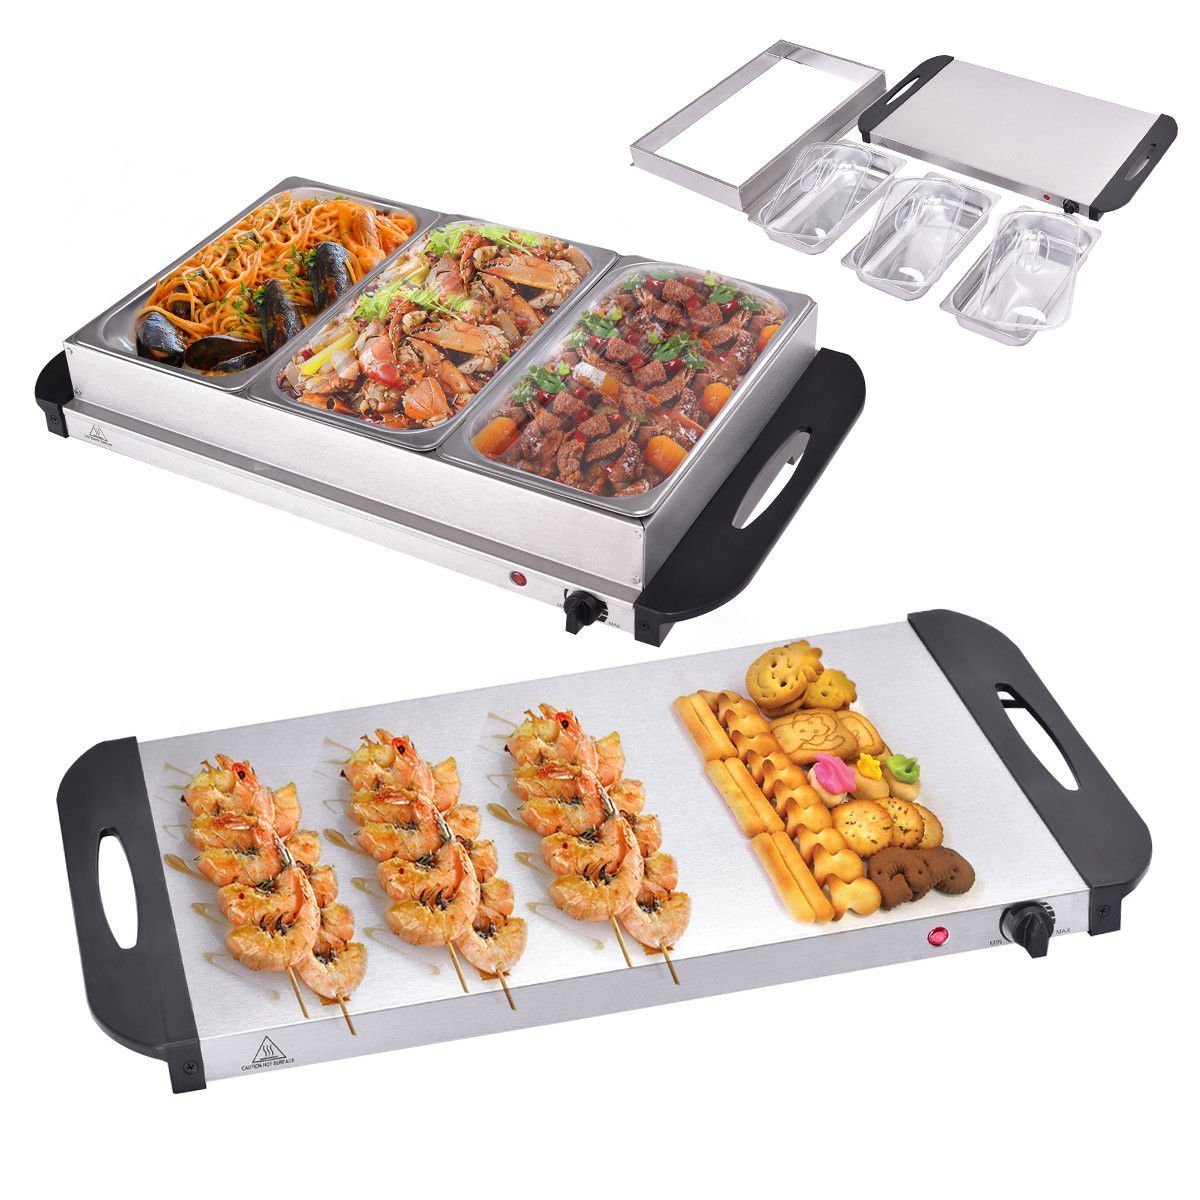 Giantex 3 Tray Buffet Server Stainless Steel Hot Plate Food Warmer Chafing Dish Tabletop (2.5 Quart)